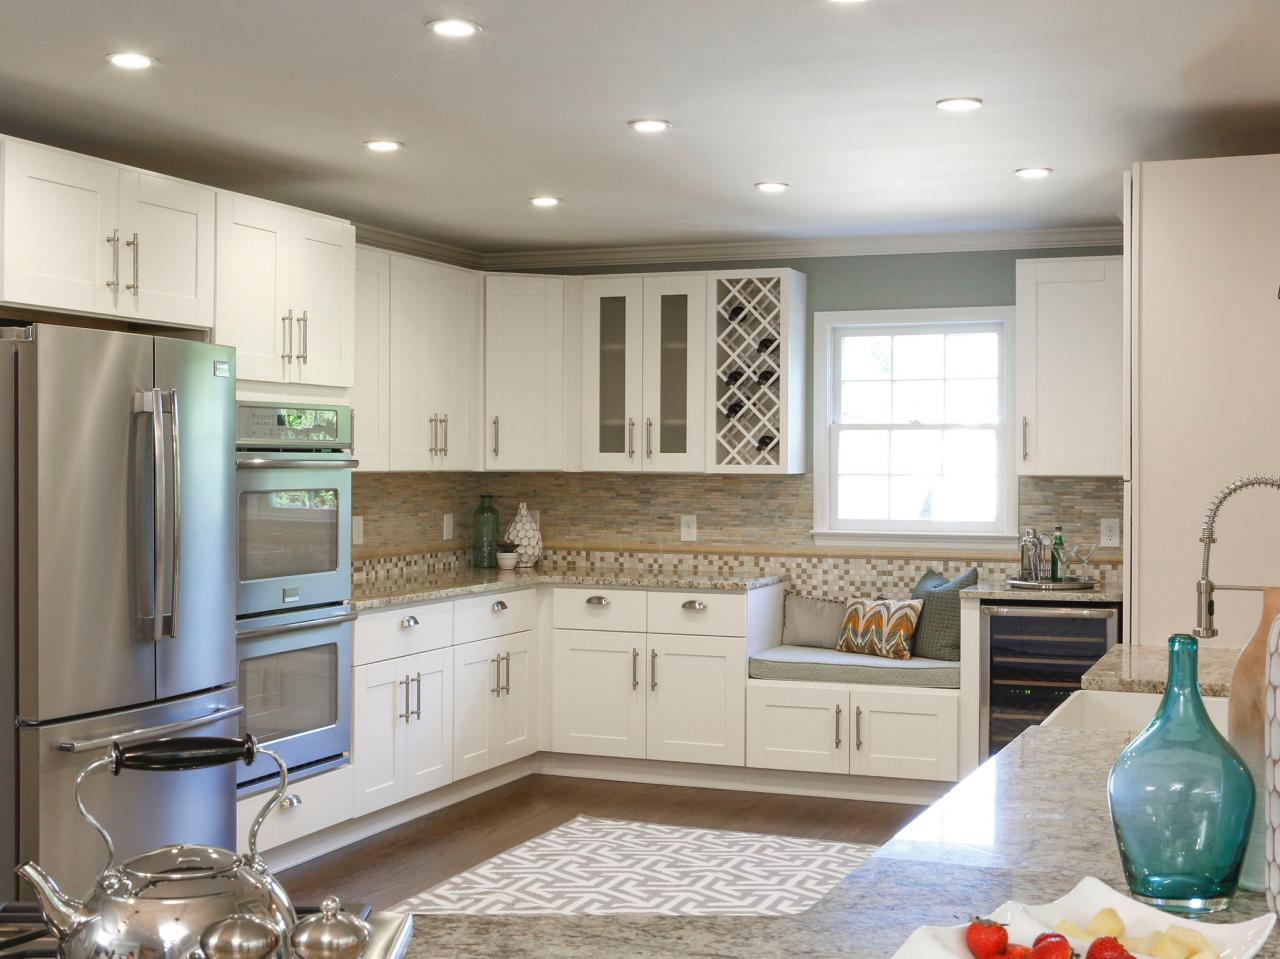 10 remodeling lessons we learned from the property - Hgtv property brothers kitchen designs ...